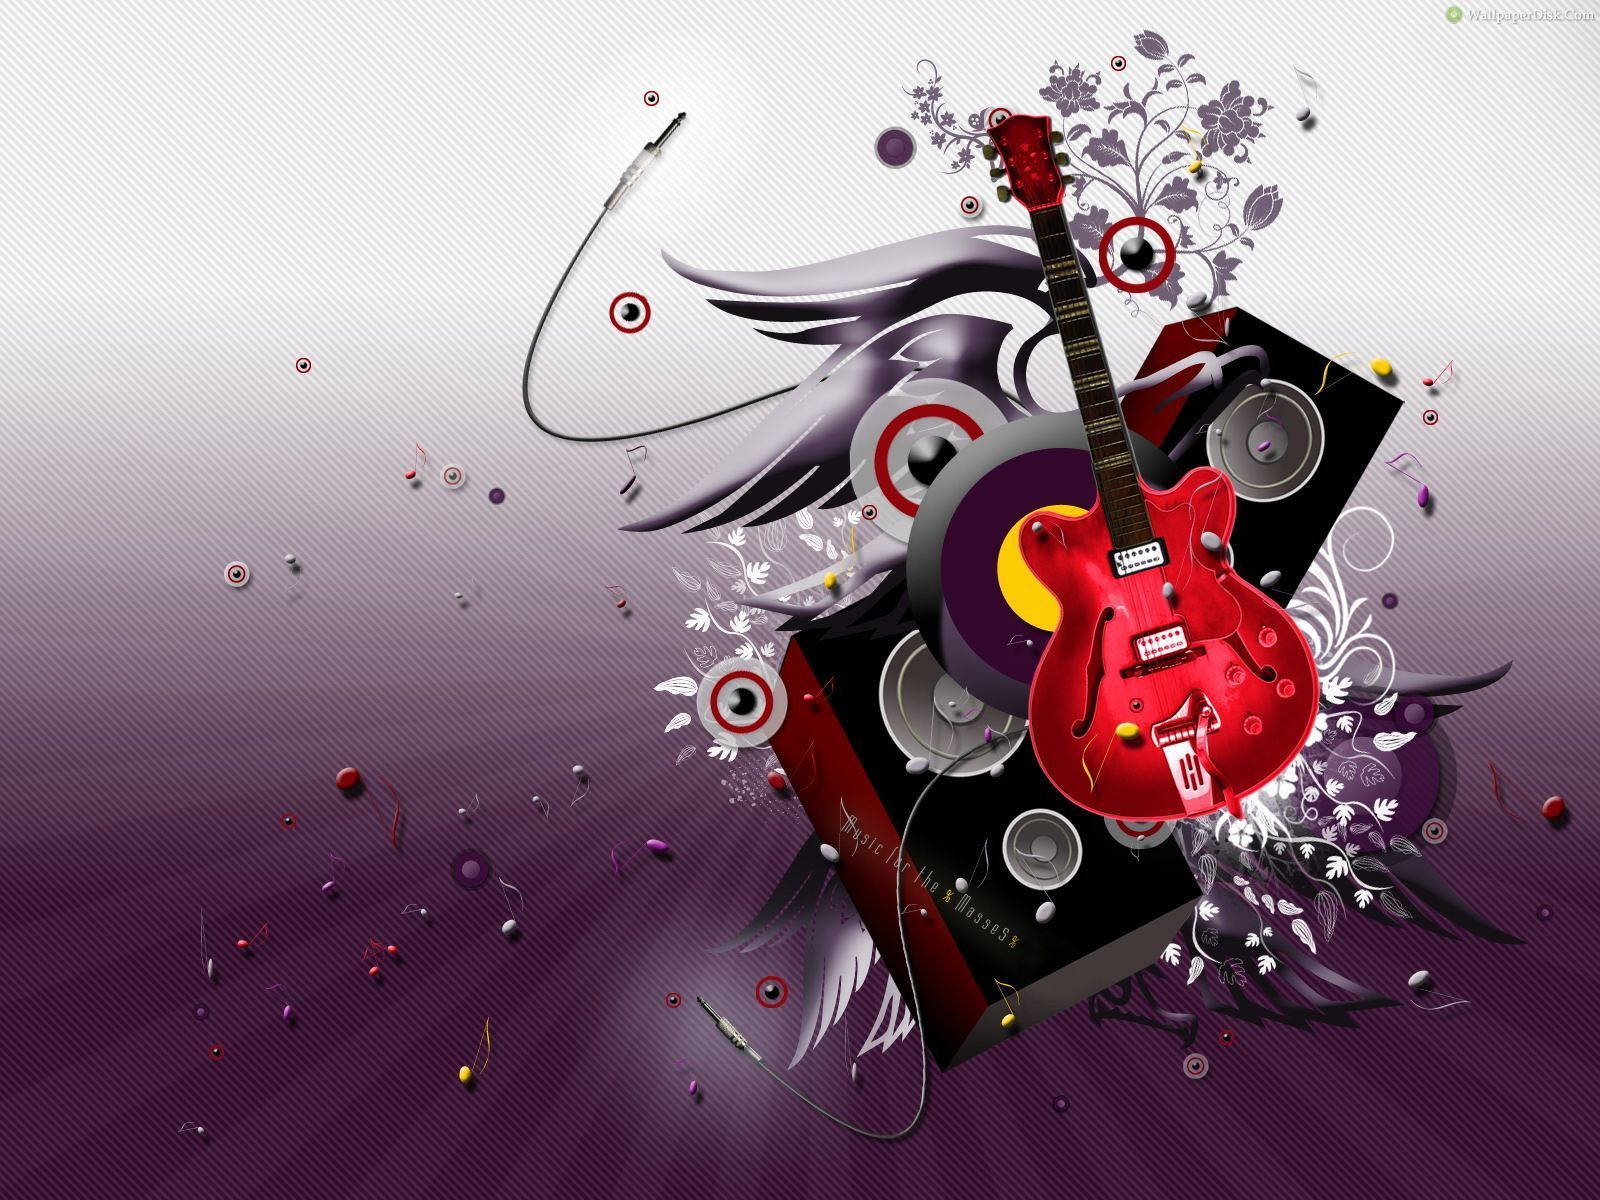 em0 gEnErAti0n-... images emo punk HD wallpaper and background ...